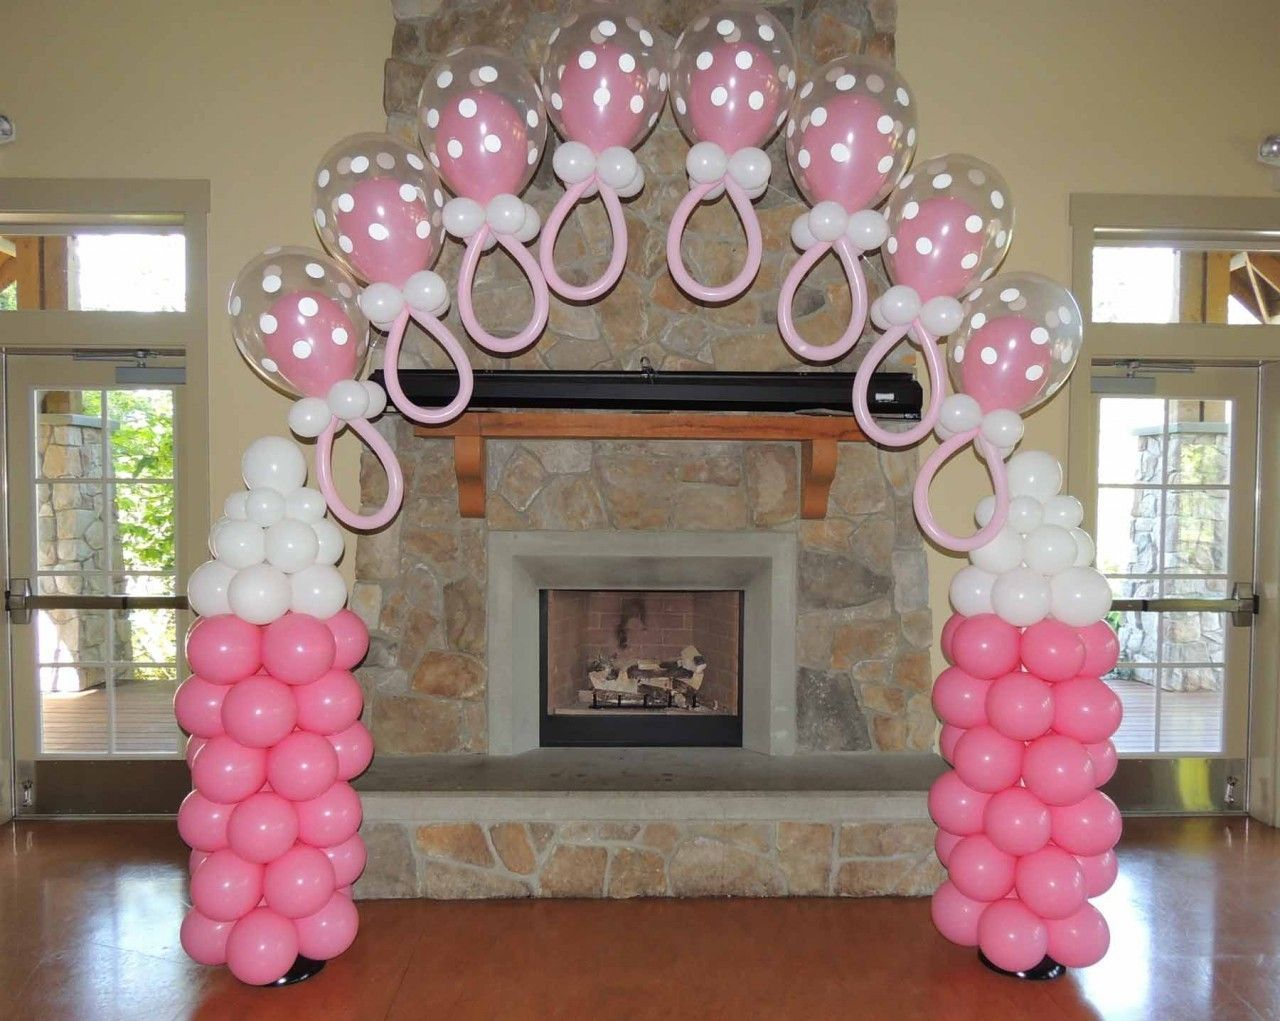 Baby Bottles with or without Rattle Arch  Baby shower balloon